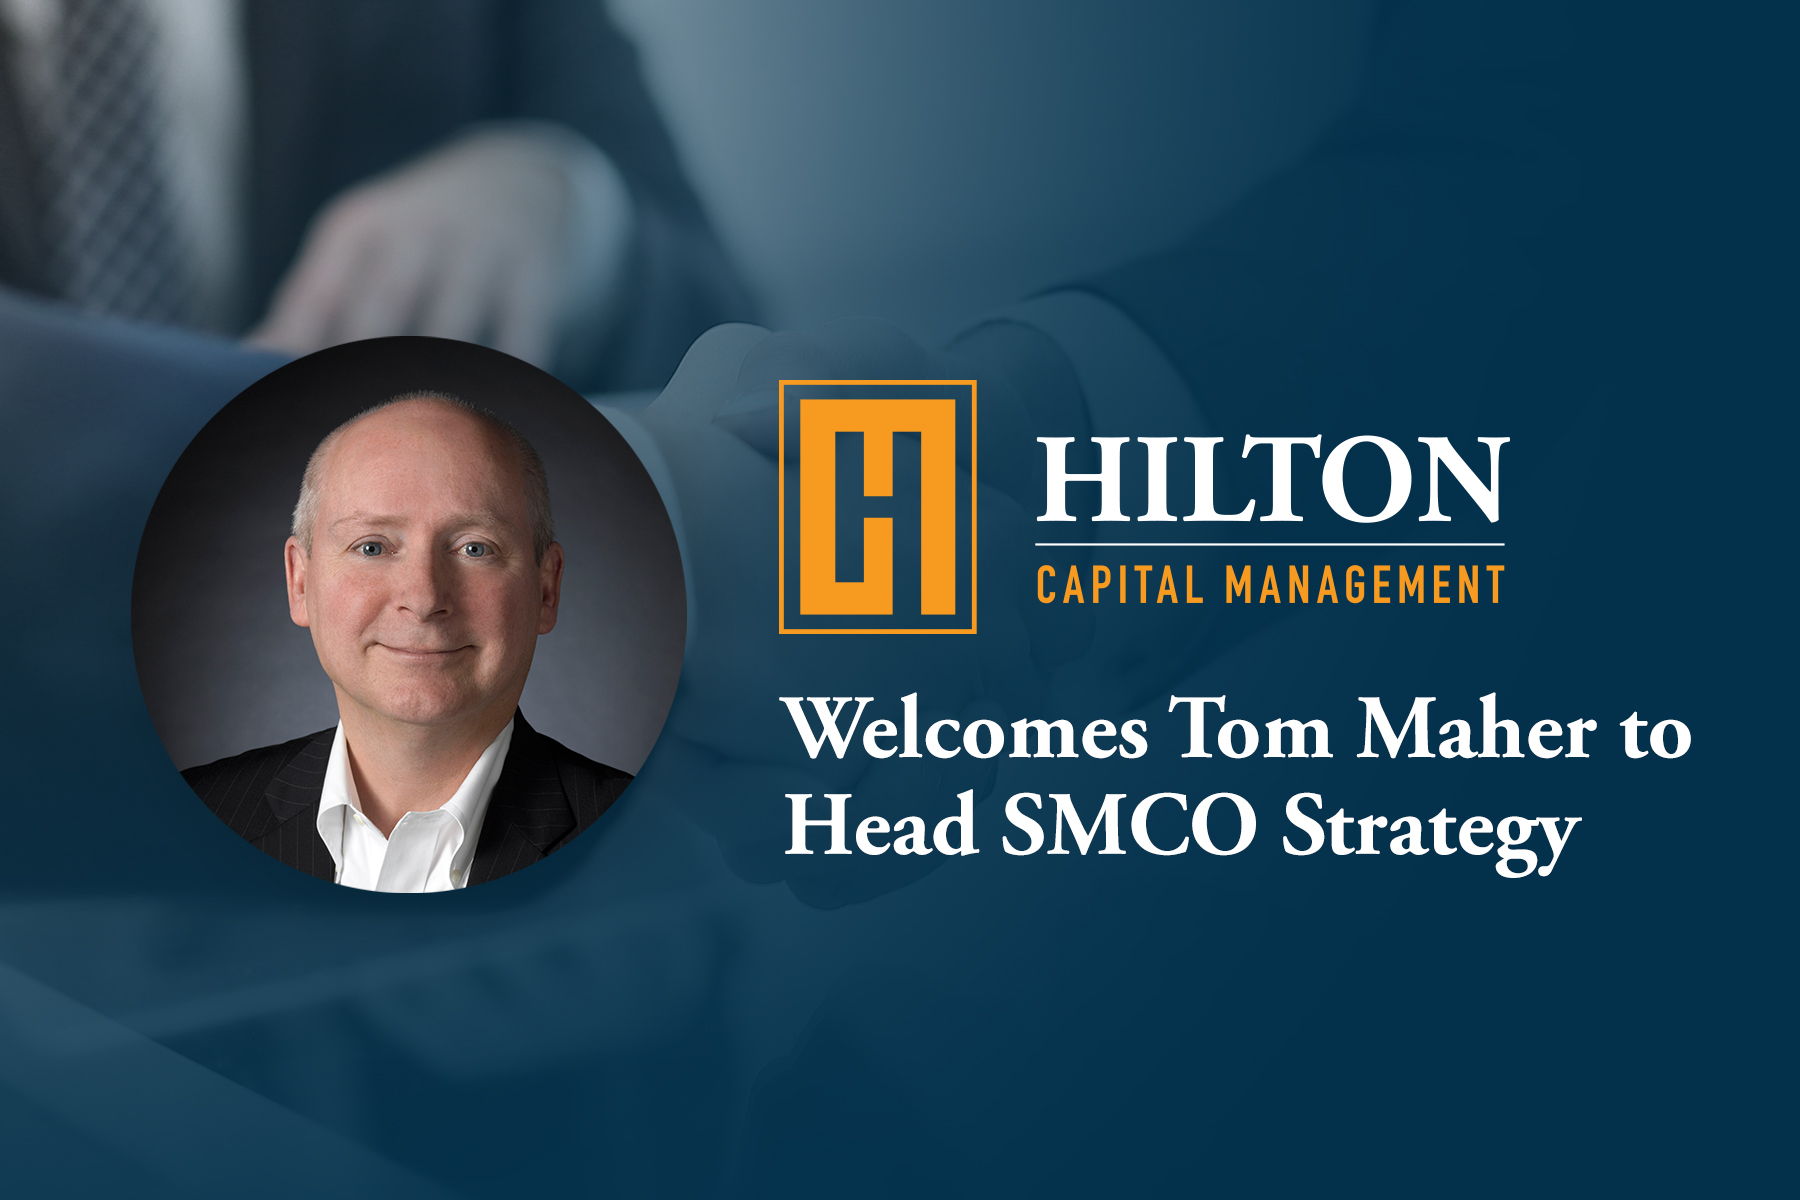 HiltonCapitalManagement-Blog-Hilton-Capital-Welcomes-Tom-Maher-to-Head-SMCO-Strategy